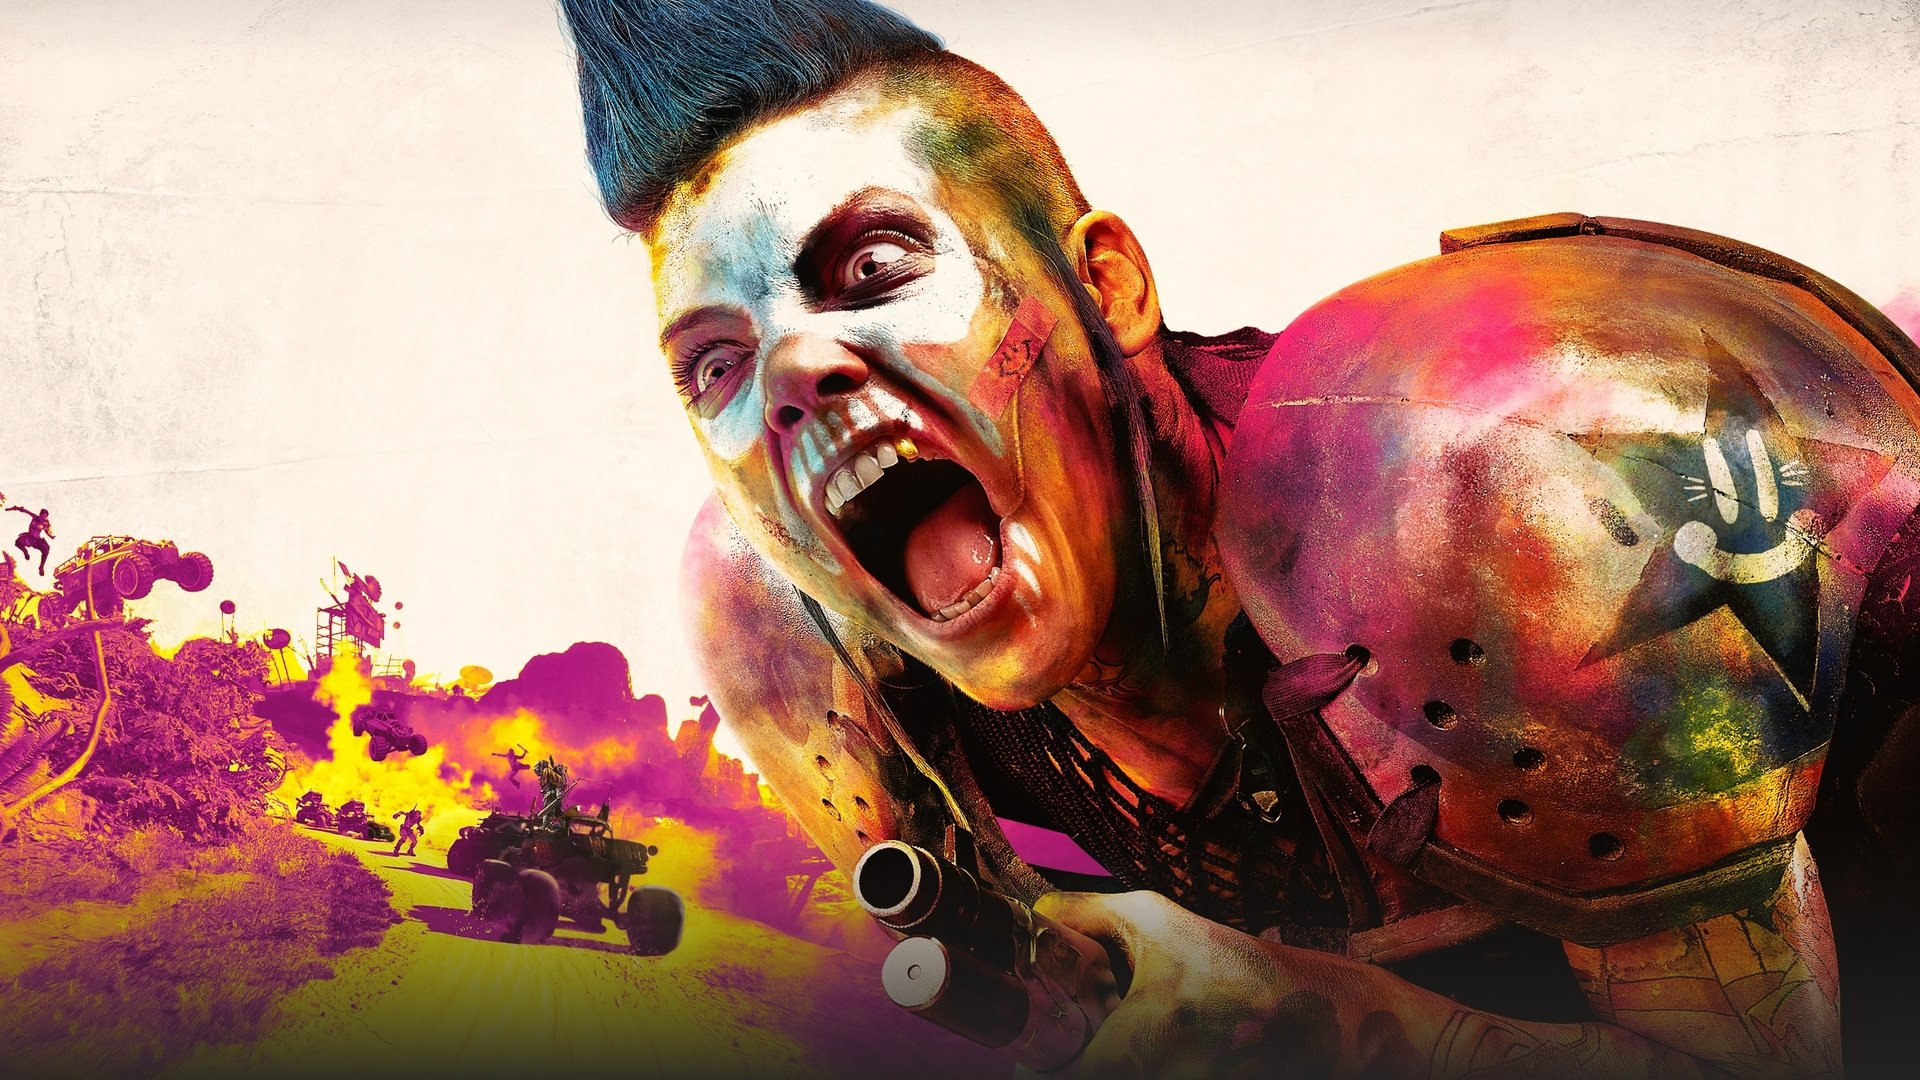 Pre-Order RAGE 2 from Walmart Canada to Get the E3 2018 Leaked Boxart Sleeve